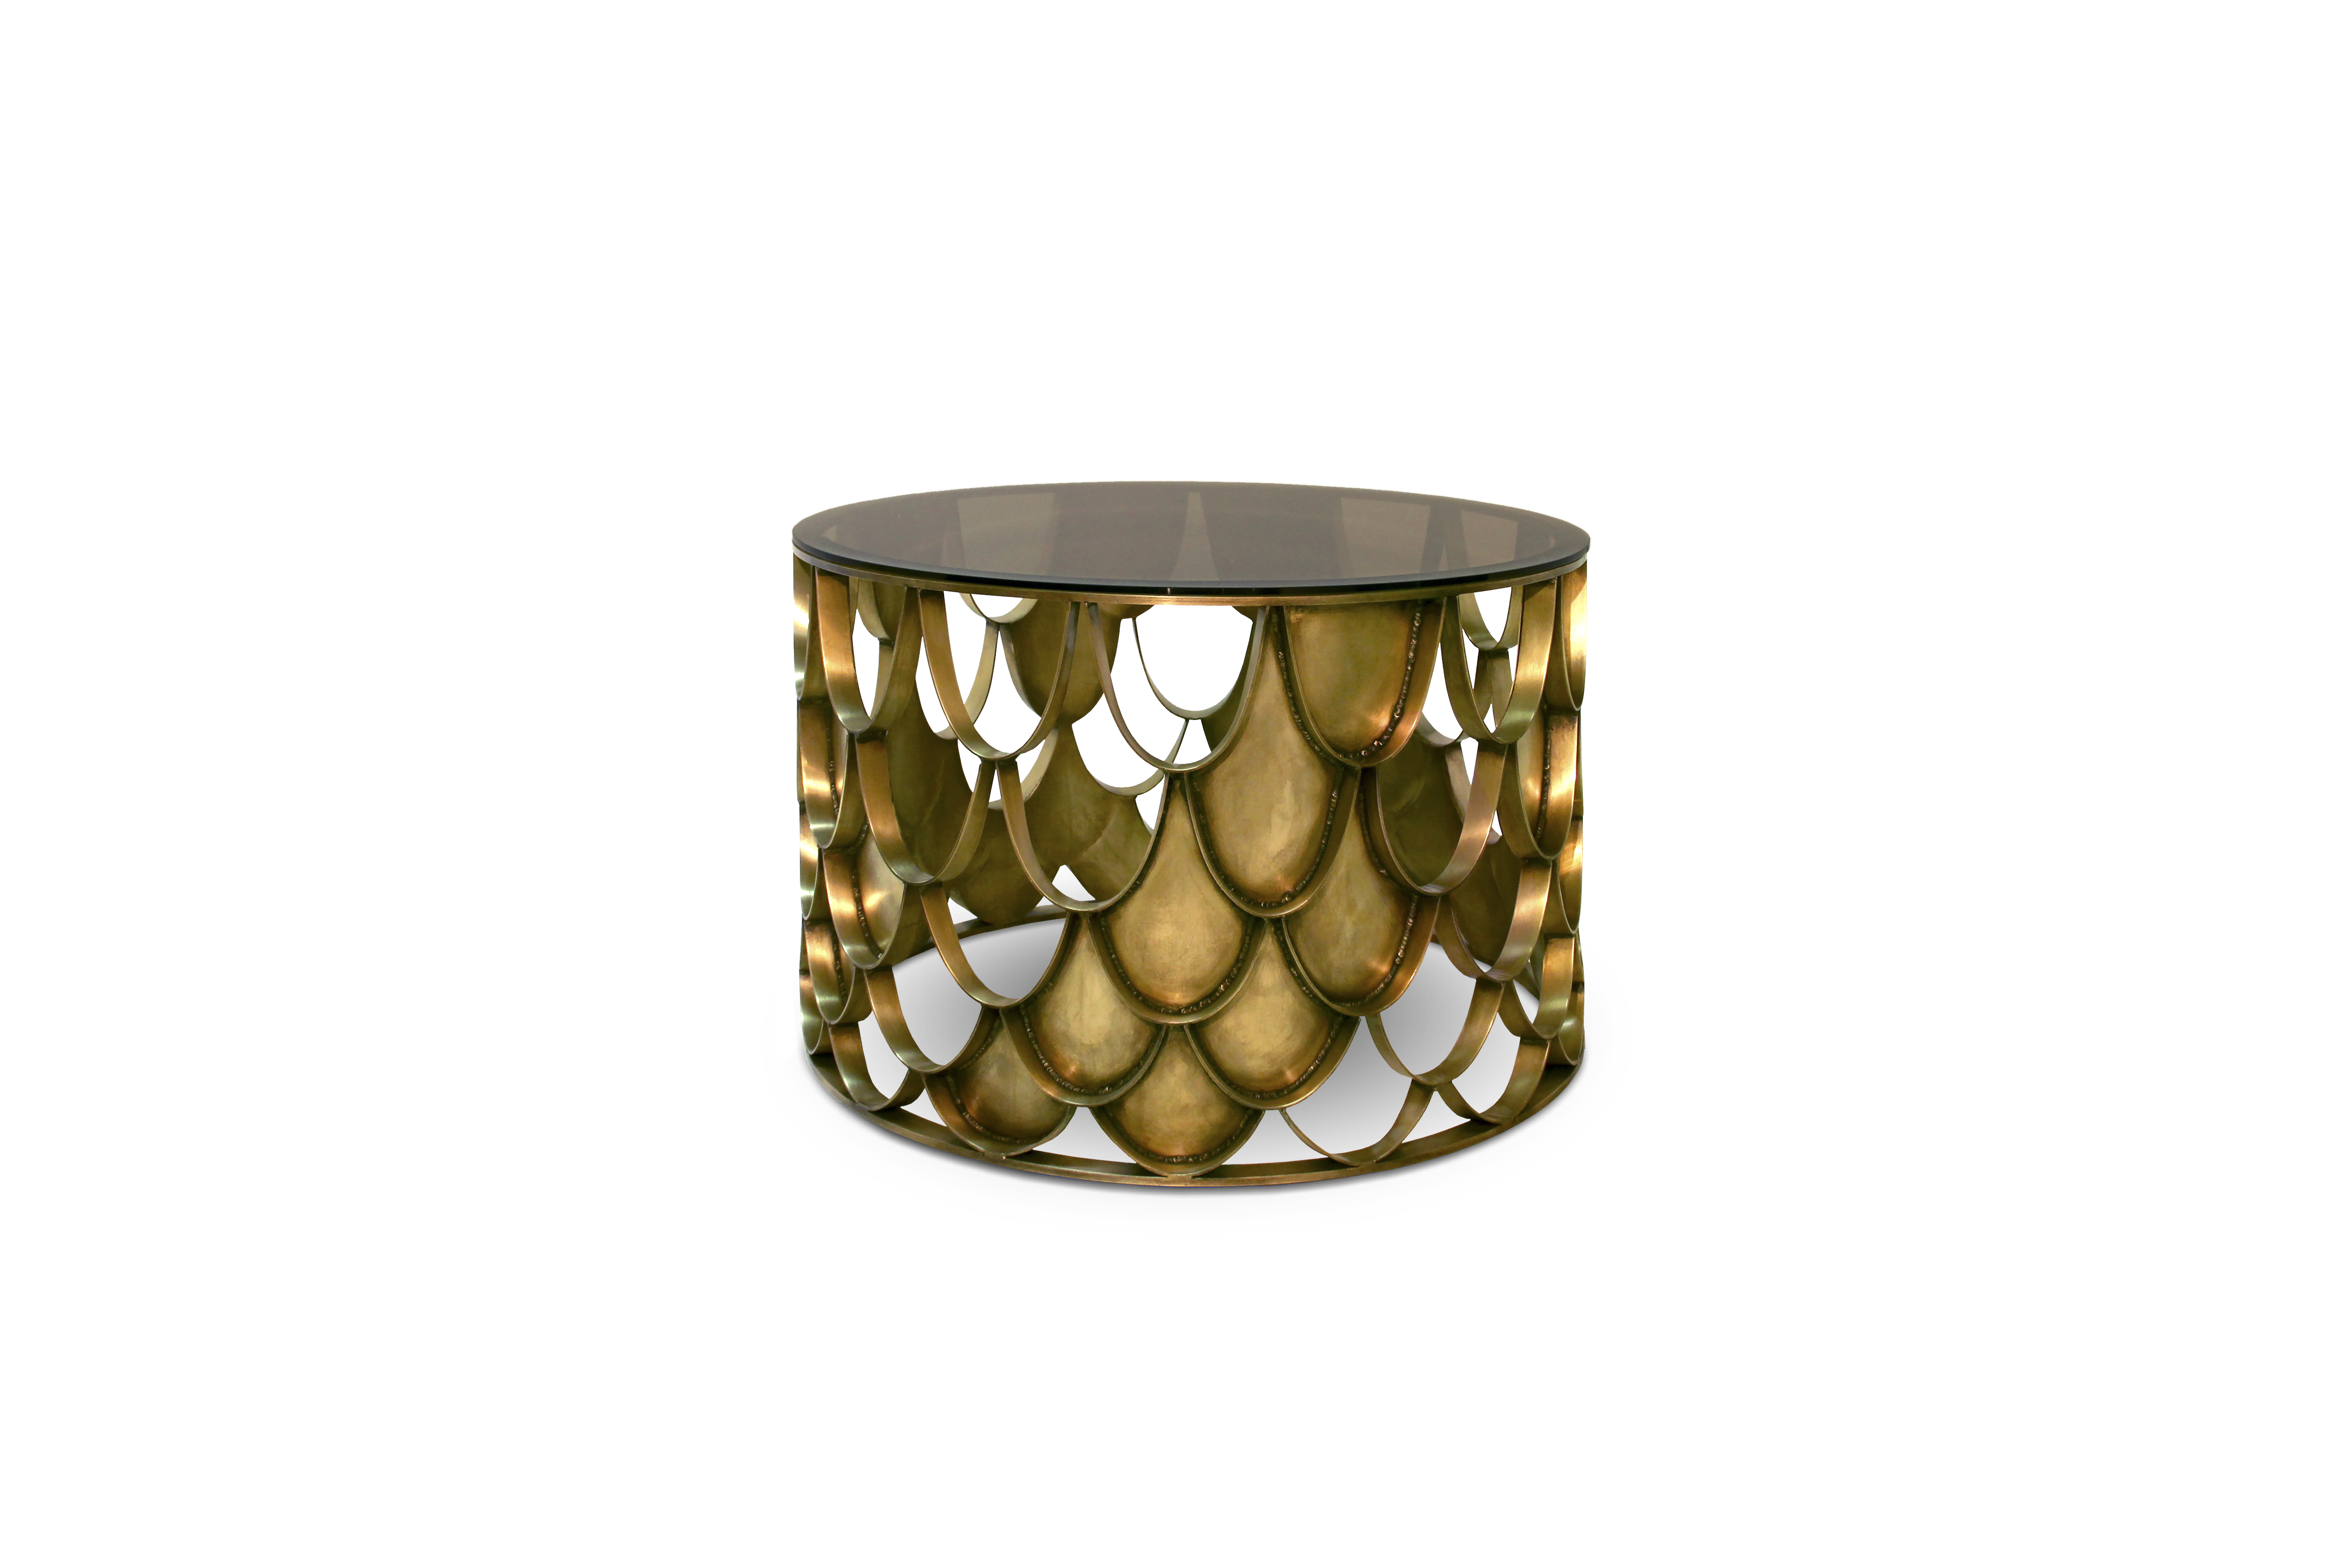 The Marvelous Koi Center Table Is The Perfect Piece for you | Brabbu is a world known design brand that reflects in its pieces an intense way of living, fierceness and power. #brabbu #centertables #designforces #homedecor #interiordesign #homeinteriors Center Table The Marvelous Koi Center Table Is The Perfect Piece for you origin